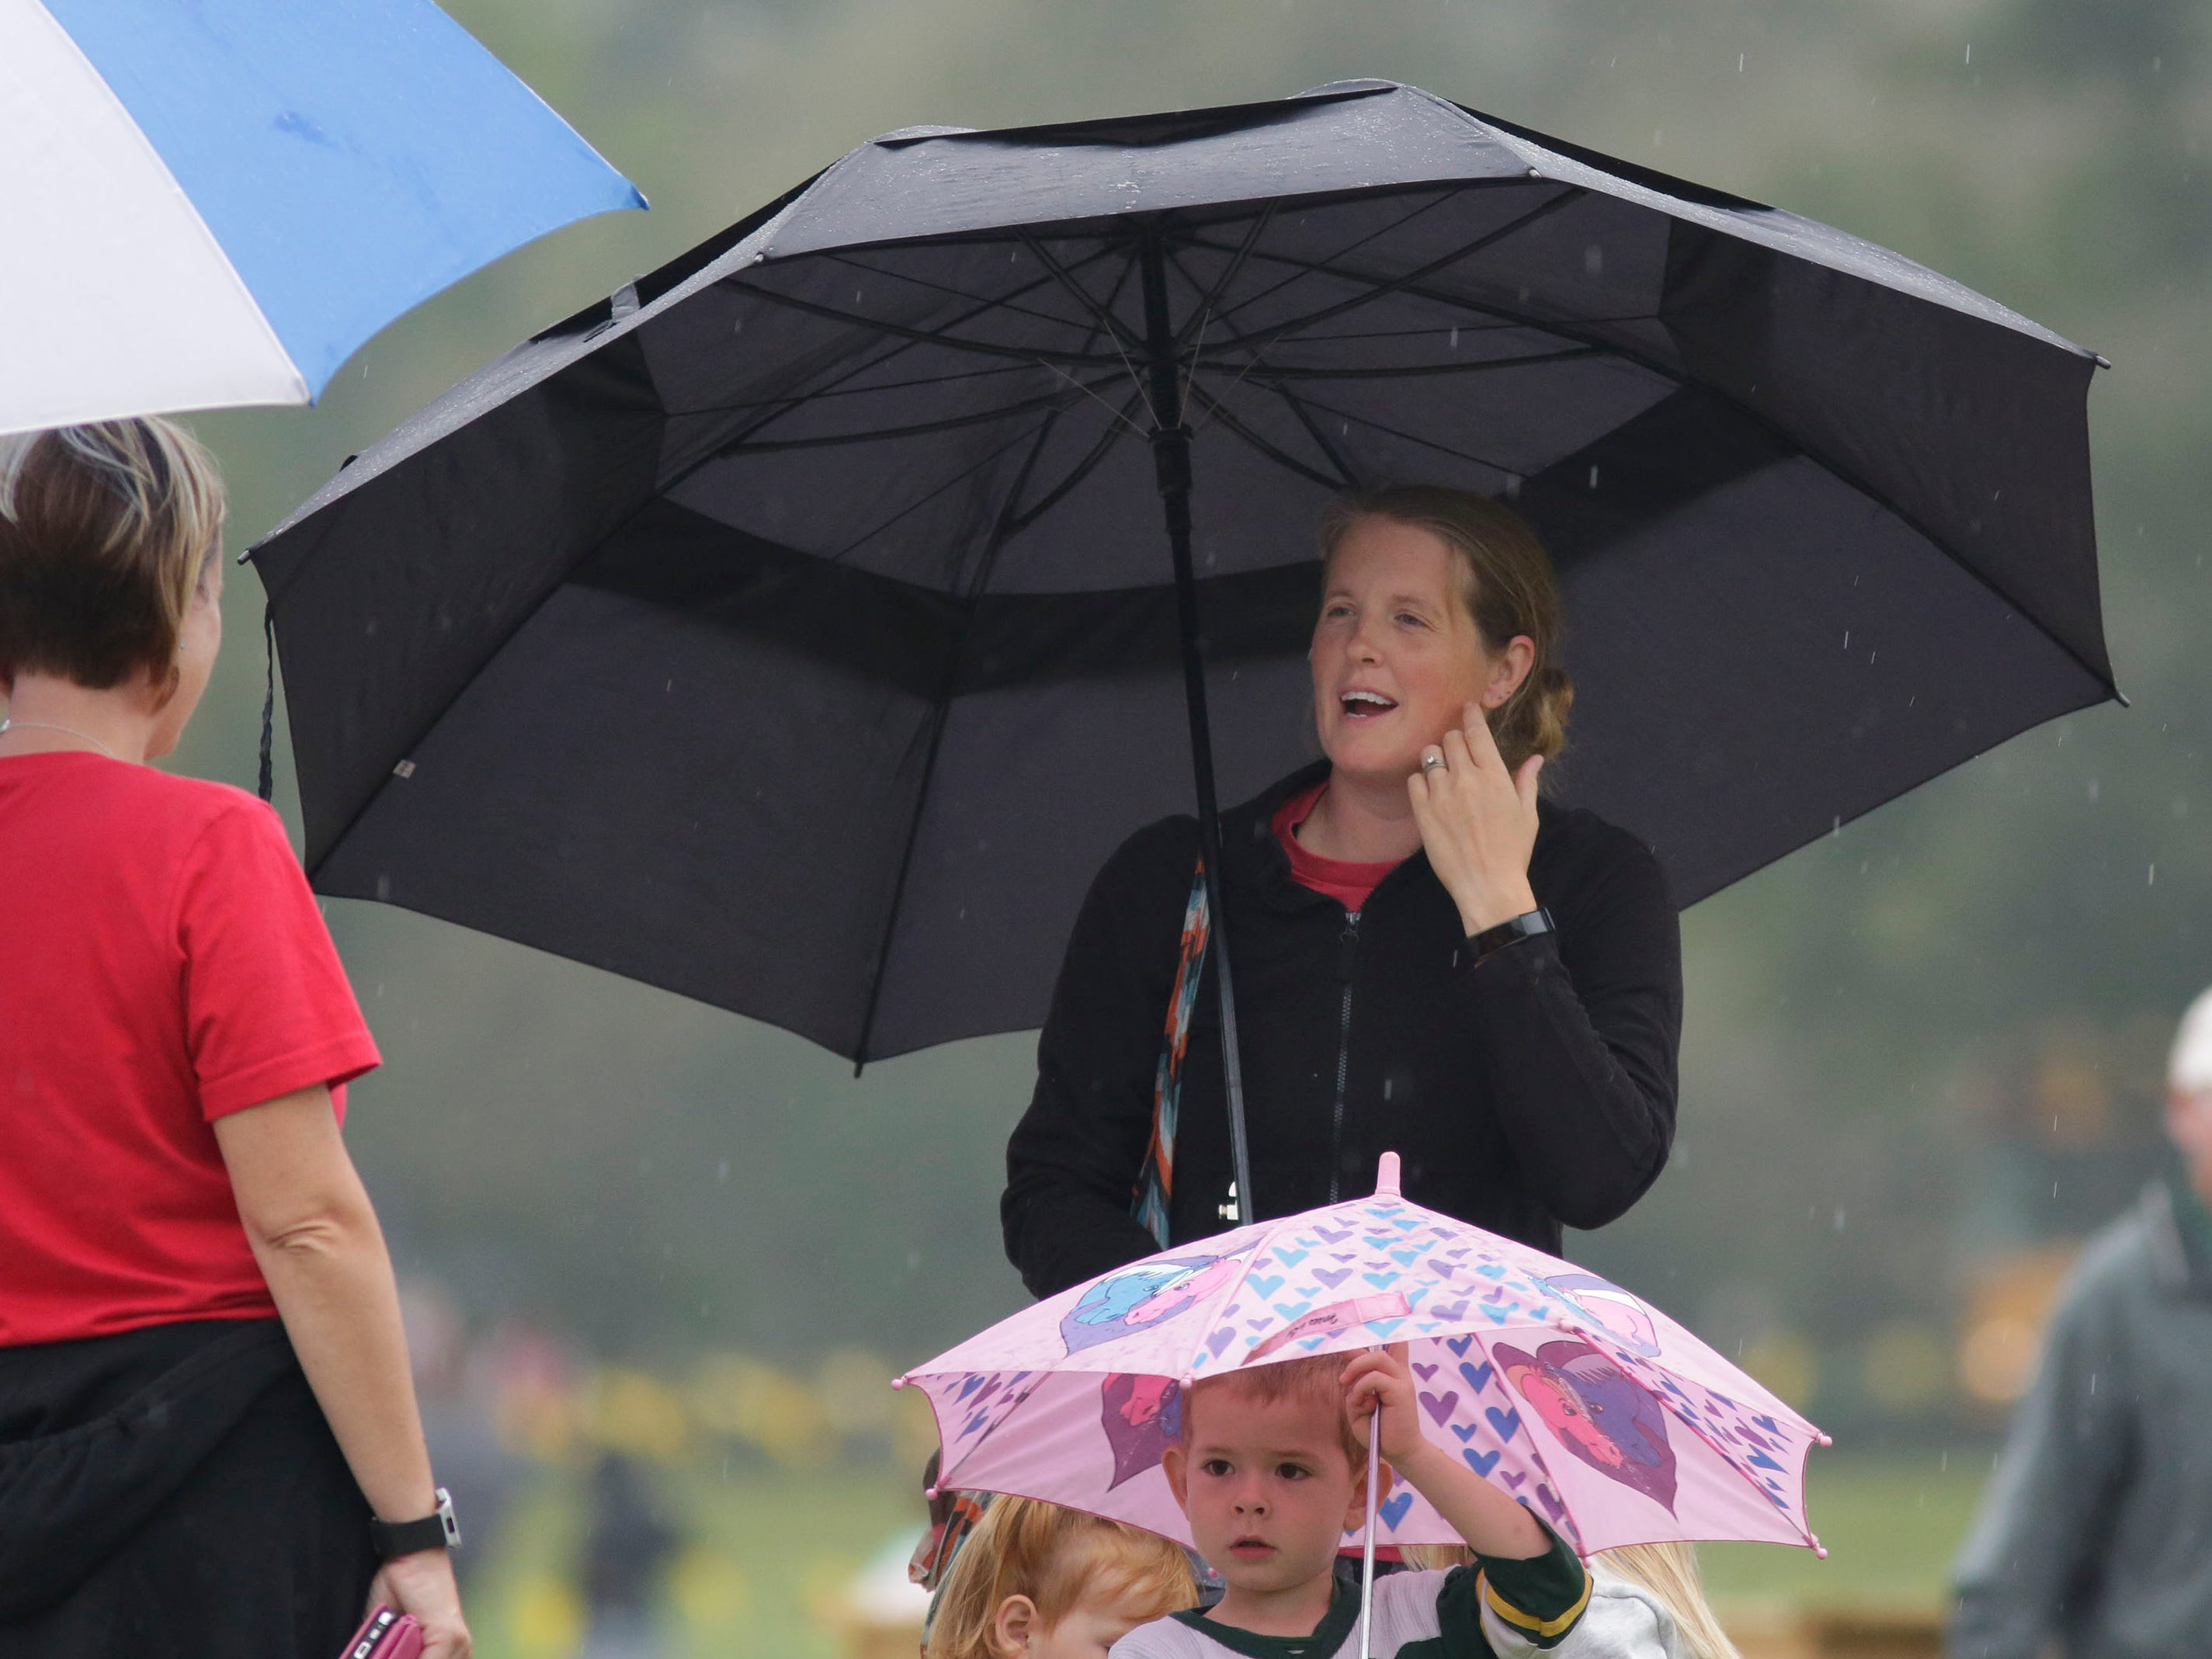 Umbrellas were used in the light rain that fell during the Sheboygan County Cross Country Invitational, Tuesday, September 25, 2018, in Sheboygan, Wis.